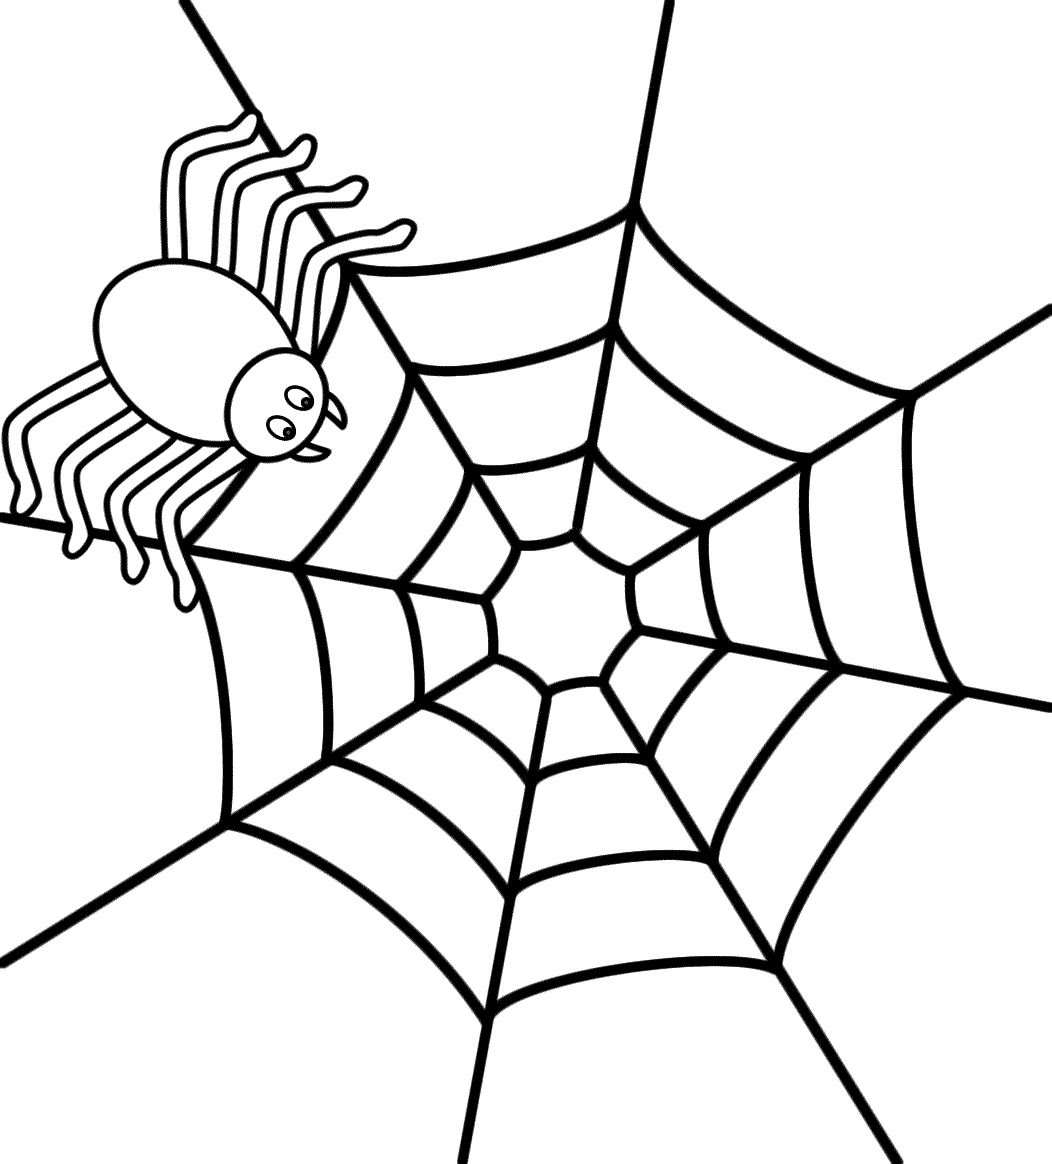 1052x1164 spider web coloring page with pages general free printable - Pictures Of Spiders To Colour In